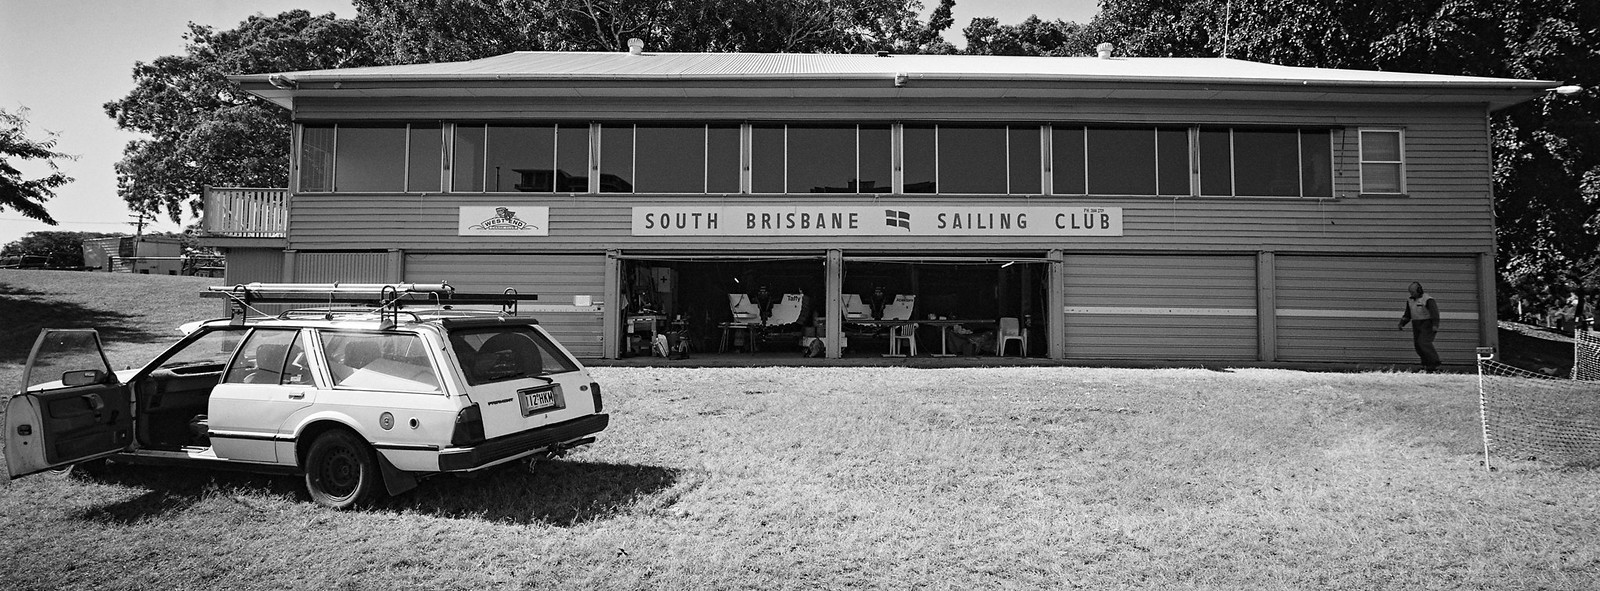 South Brisbane Sailing Club i